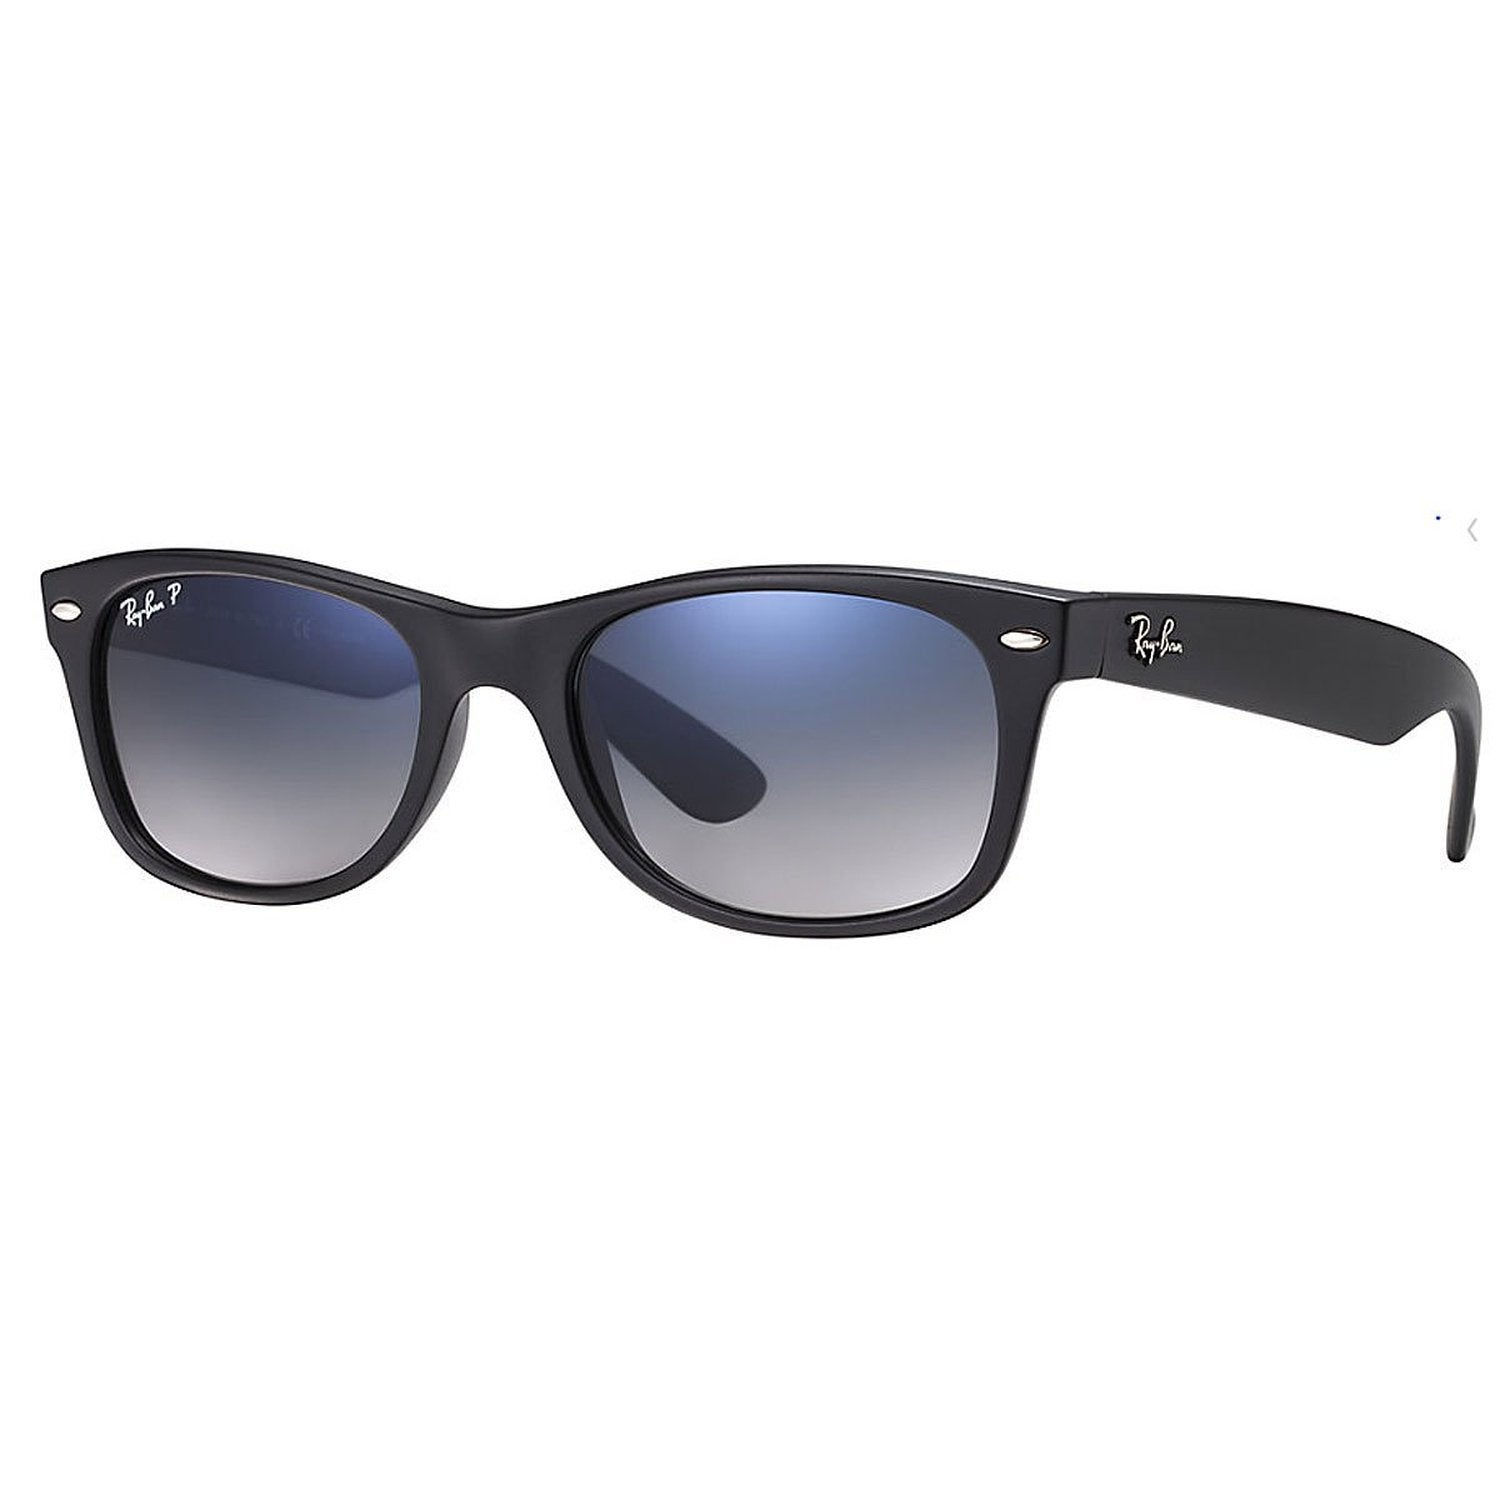 44924a415bd Shop Ray-Ban RB2132 New Wayfarer Black Polarized Sunglasses - Free ...